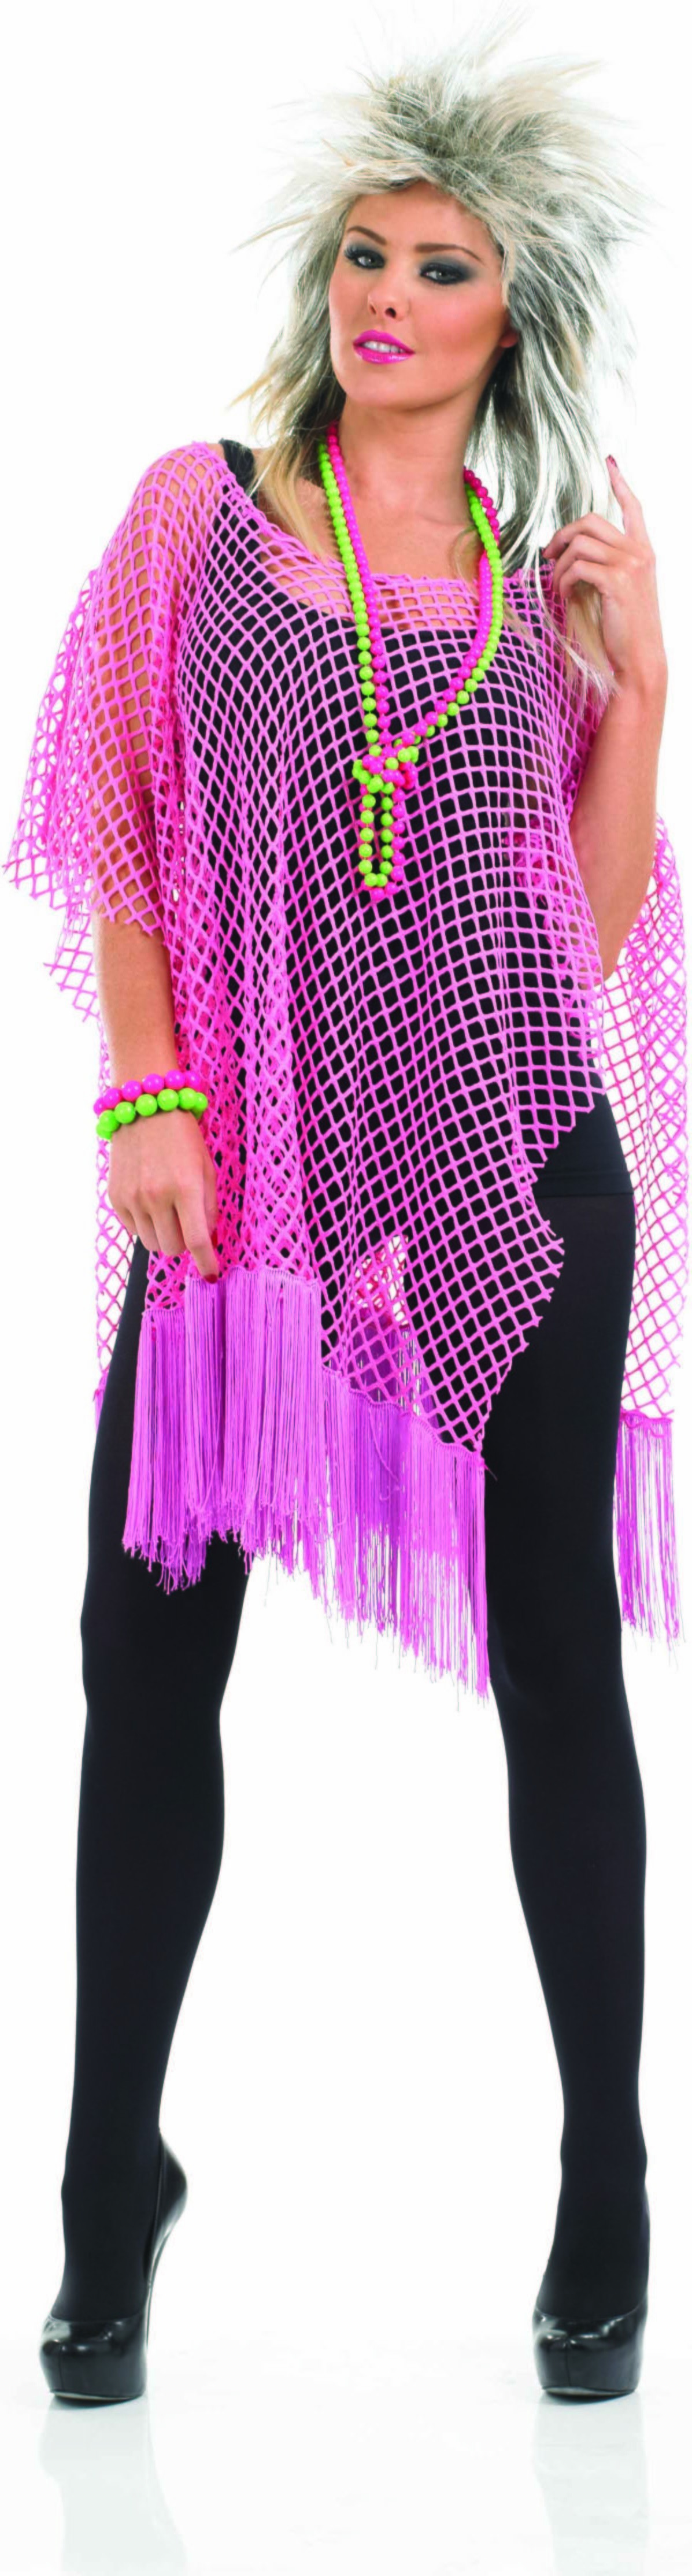 Ladies Neon Pink Long Net Top Accessories - (Pink)